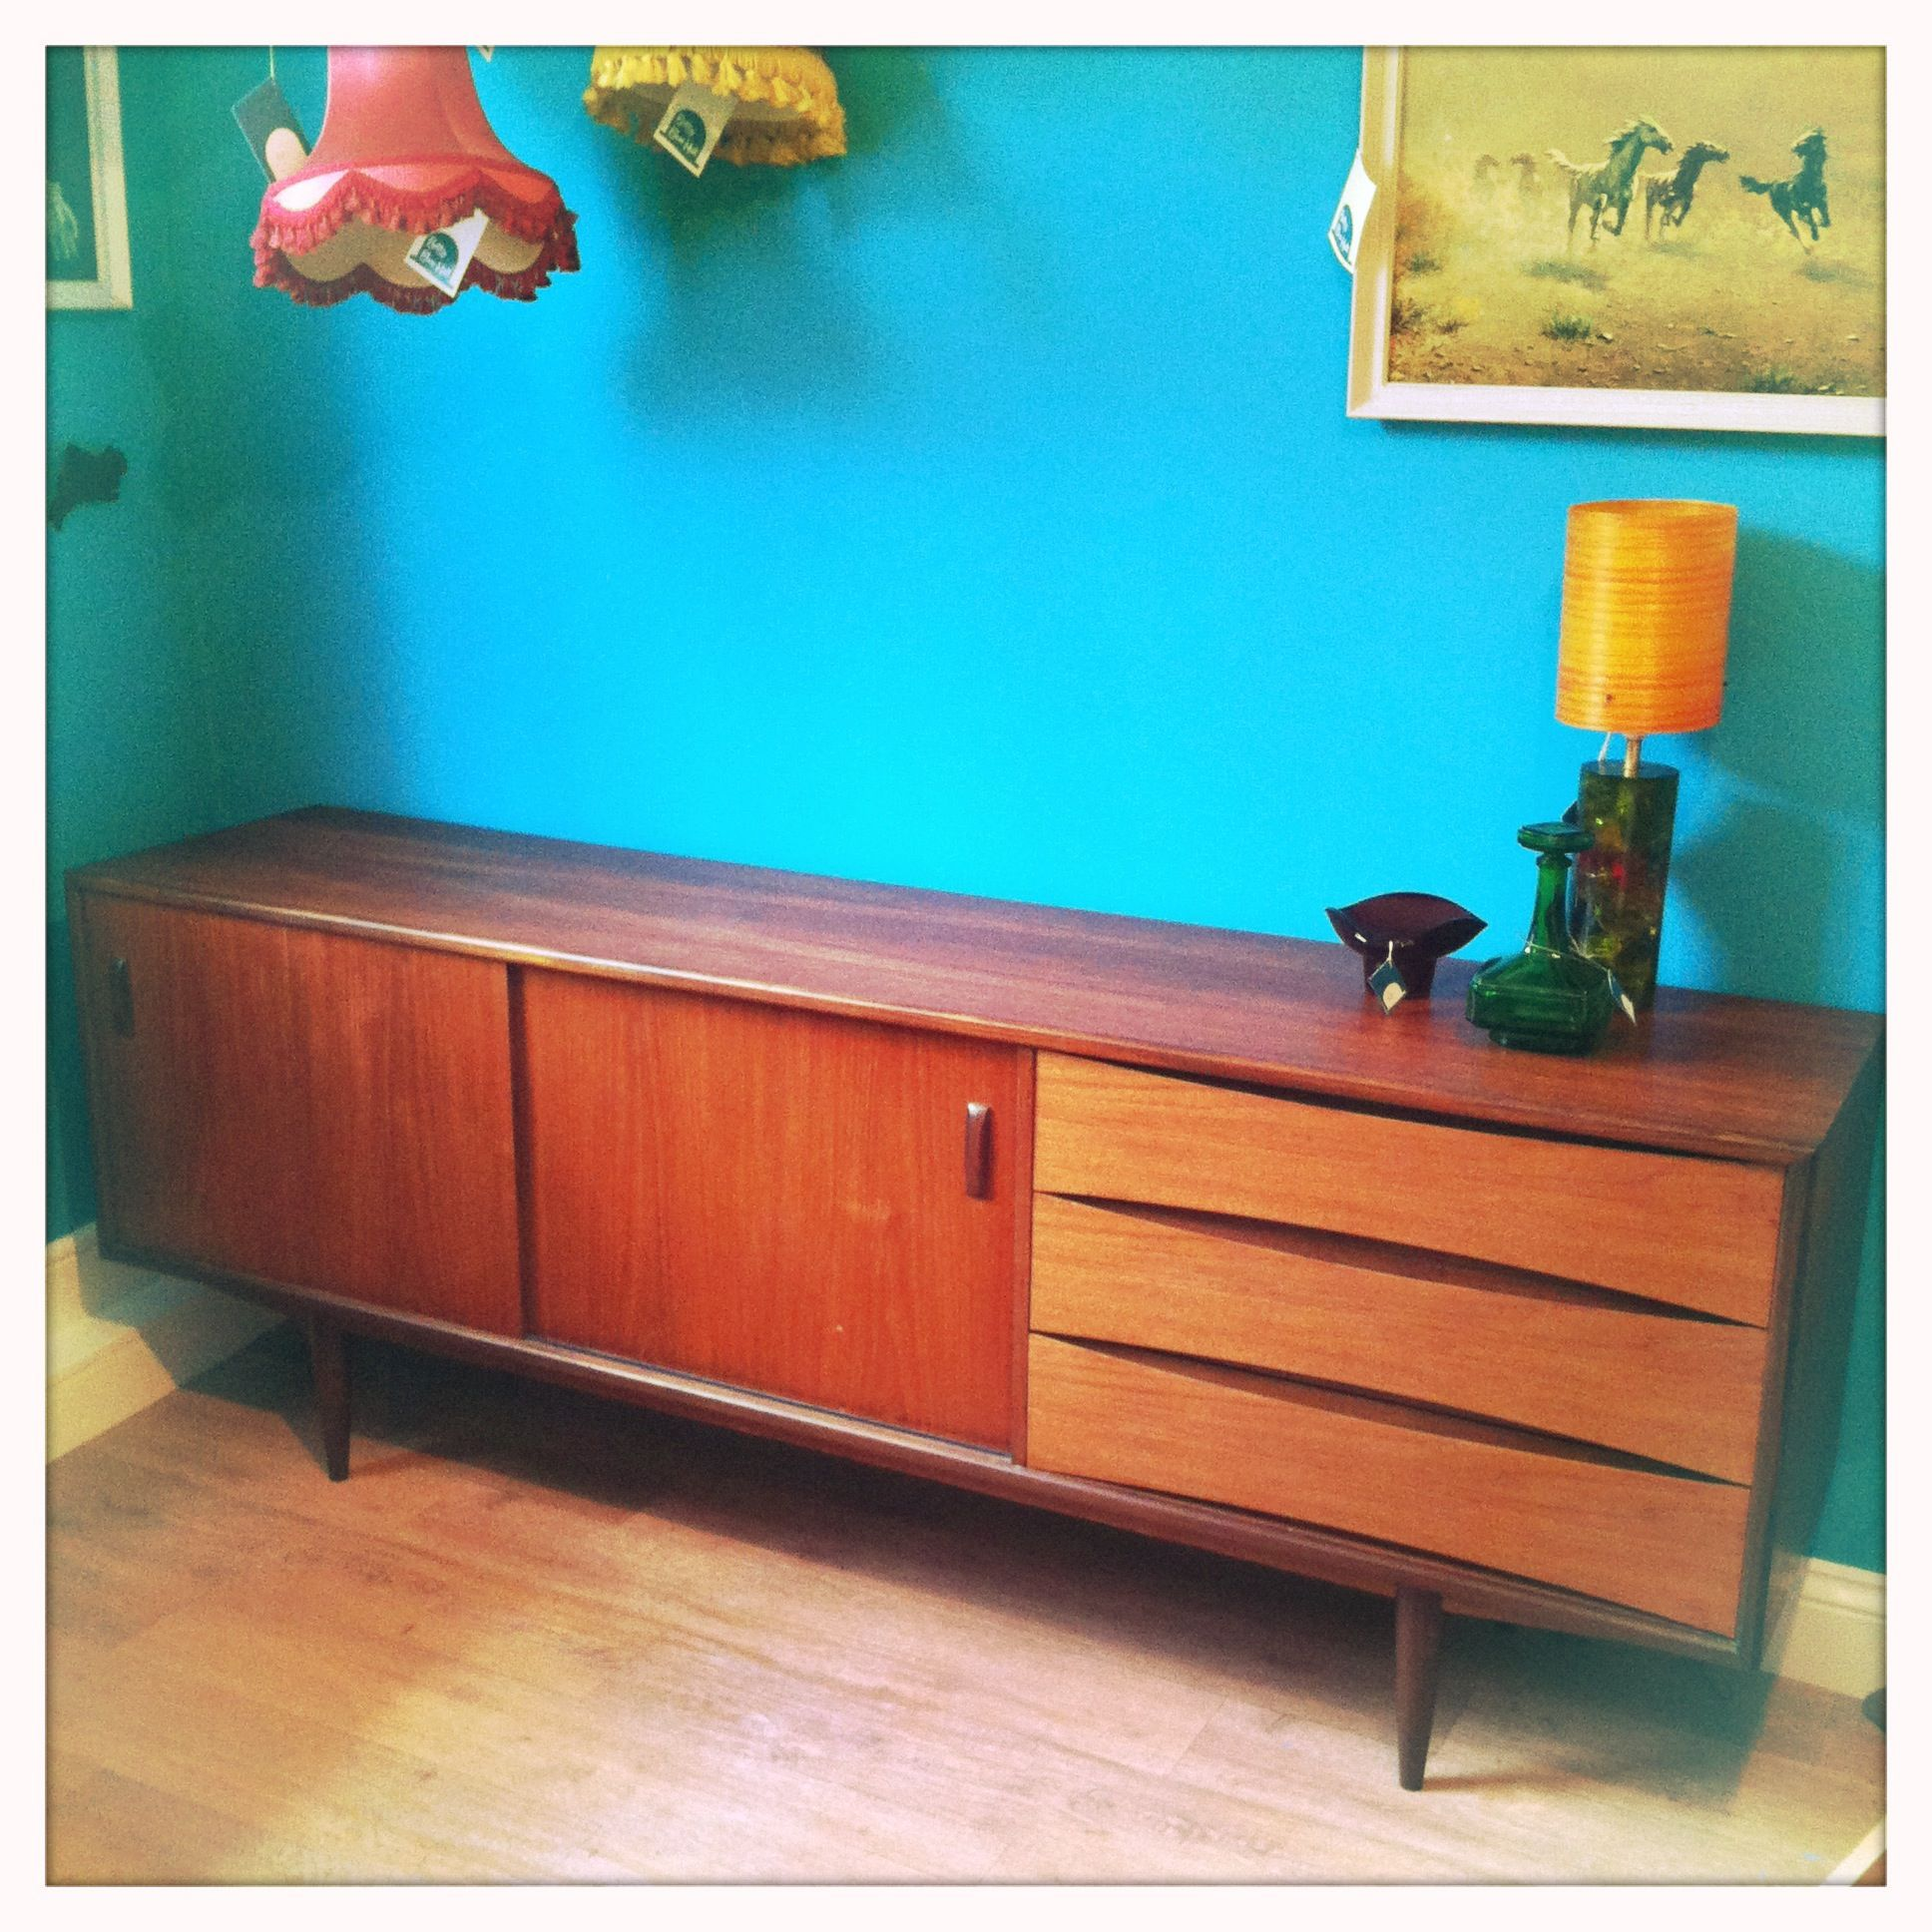 Retro Furniture Wonderful Inspiration Retro Furniture Sideoard From Wood  Brown Color Vintage Retro